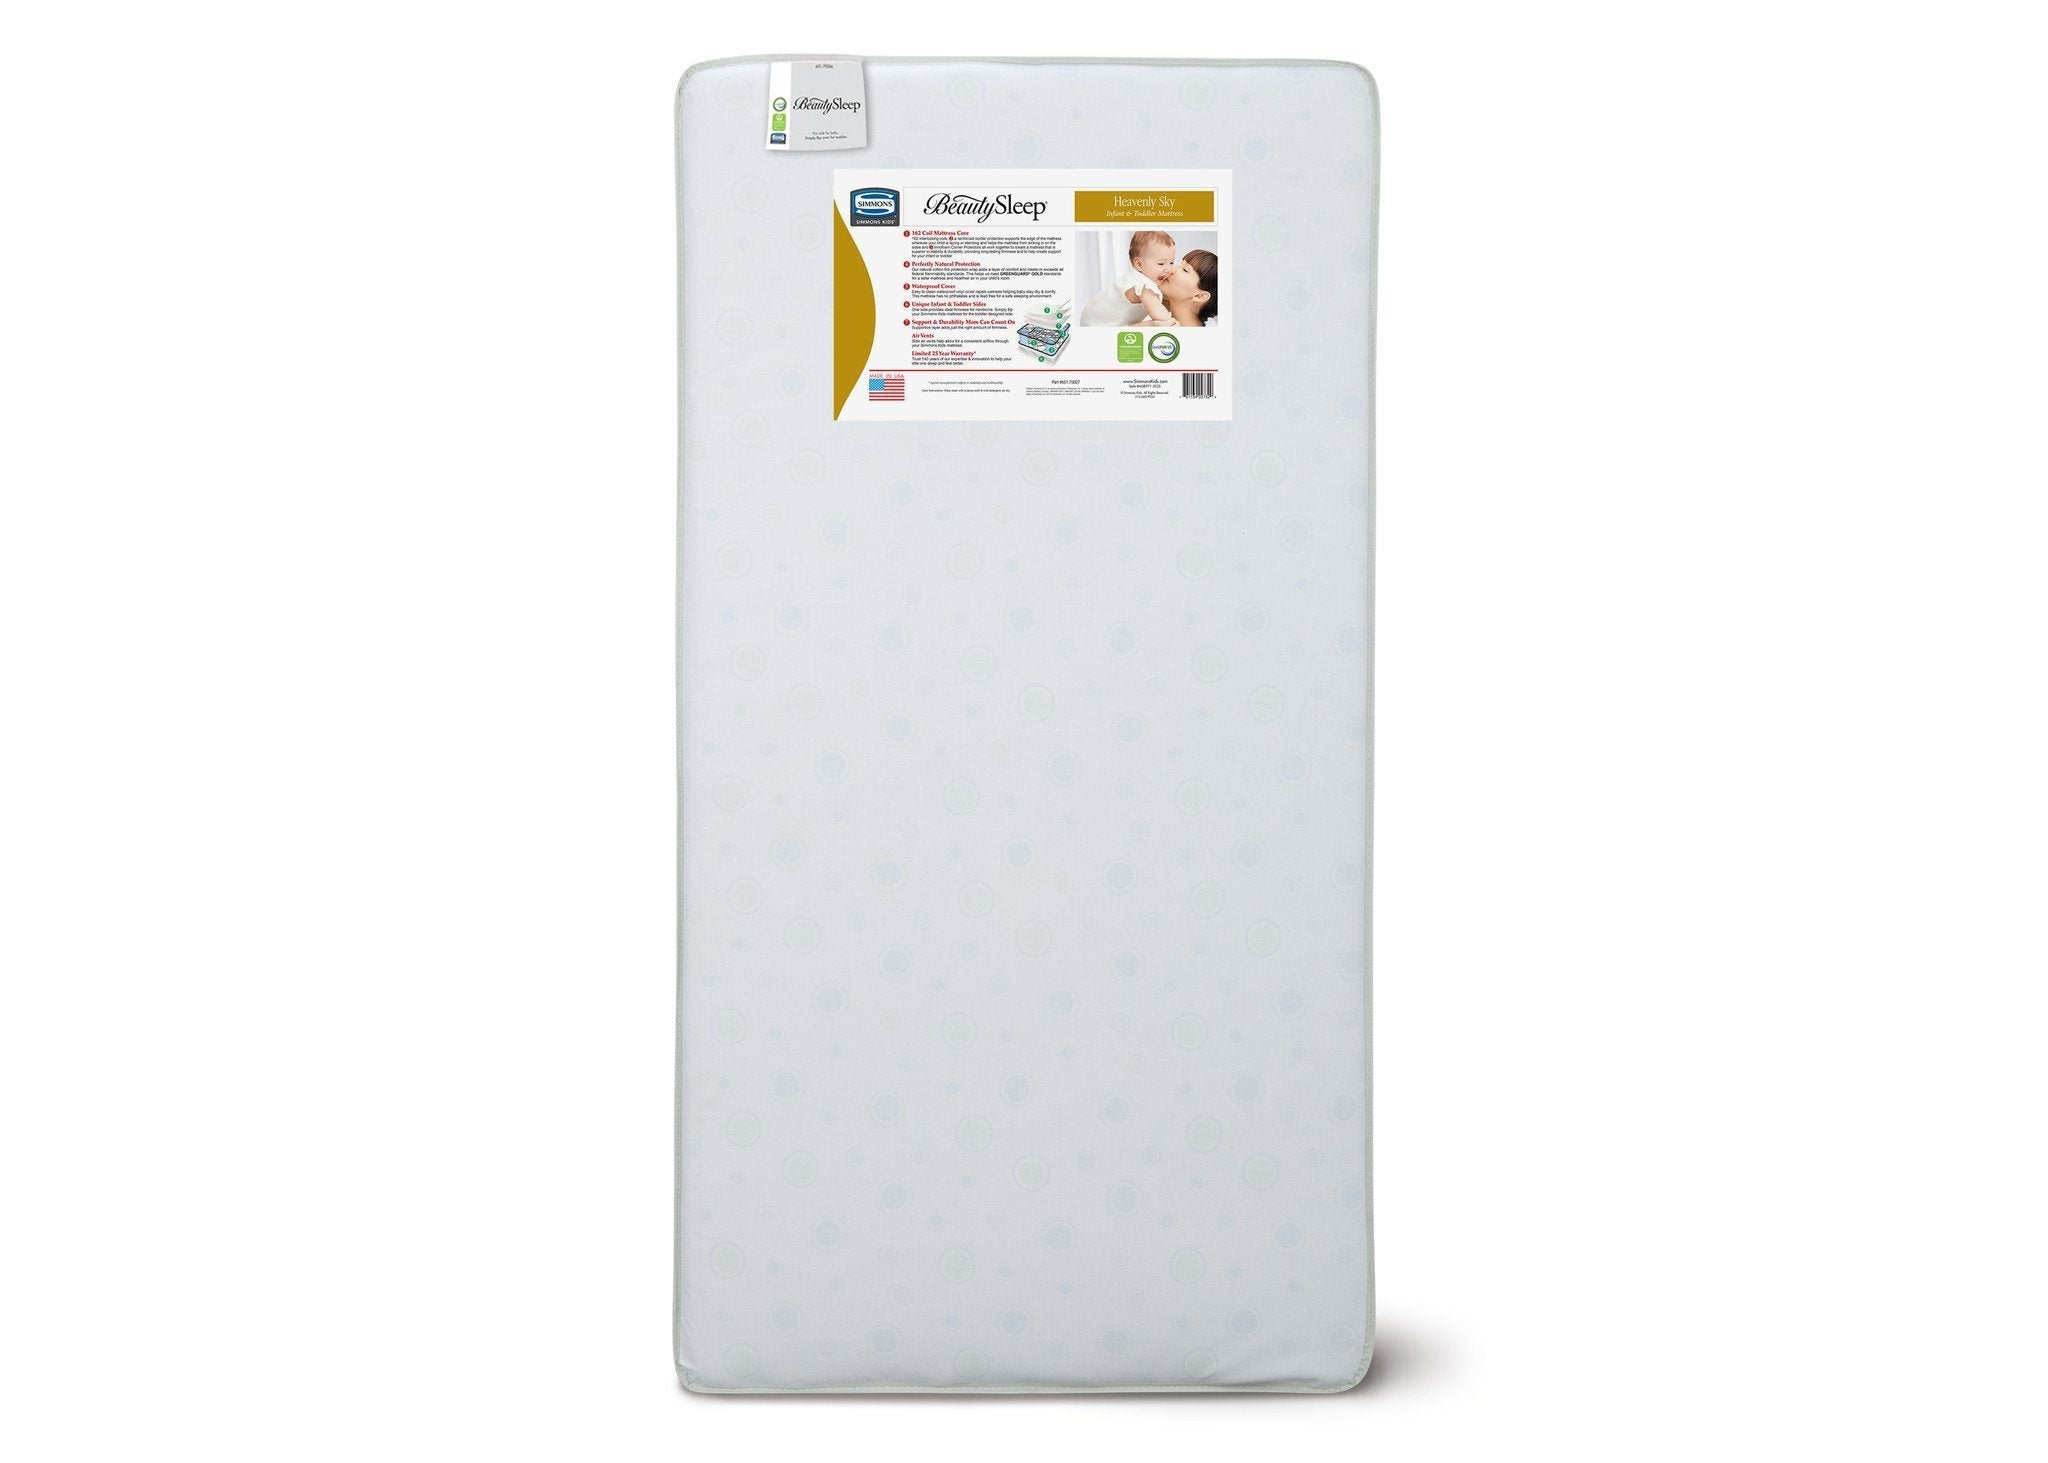 Simmons Kids Heavenly Sky Infant & Toddler Mattress Front View a4a No Color (NO)